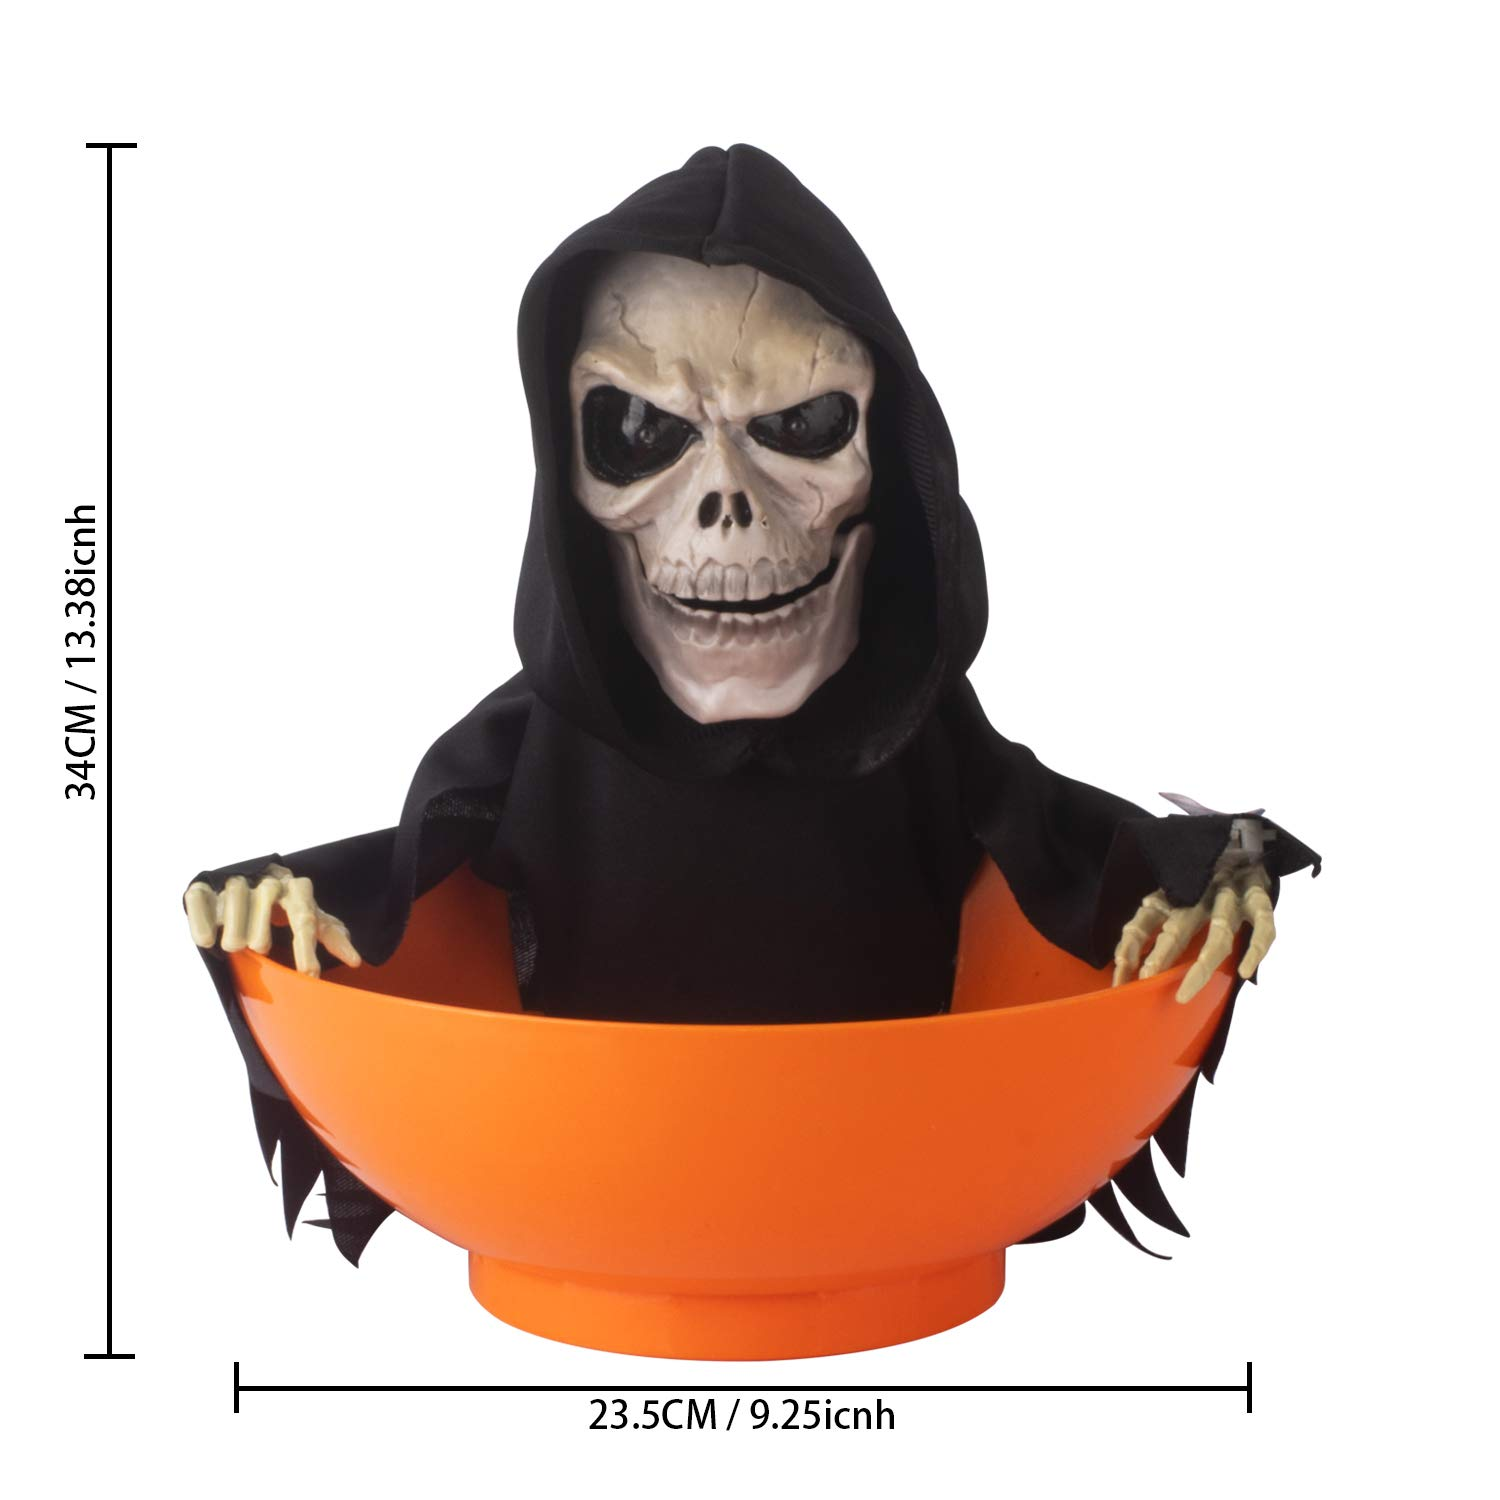 Itart Halloween Candy Bowl Dish Grim Reaper Animated Candy Bowls Halloween Decorations For Treat Or Trick Candy Holder Container Amazon In Toys Games